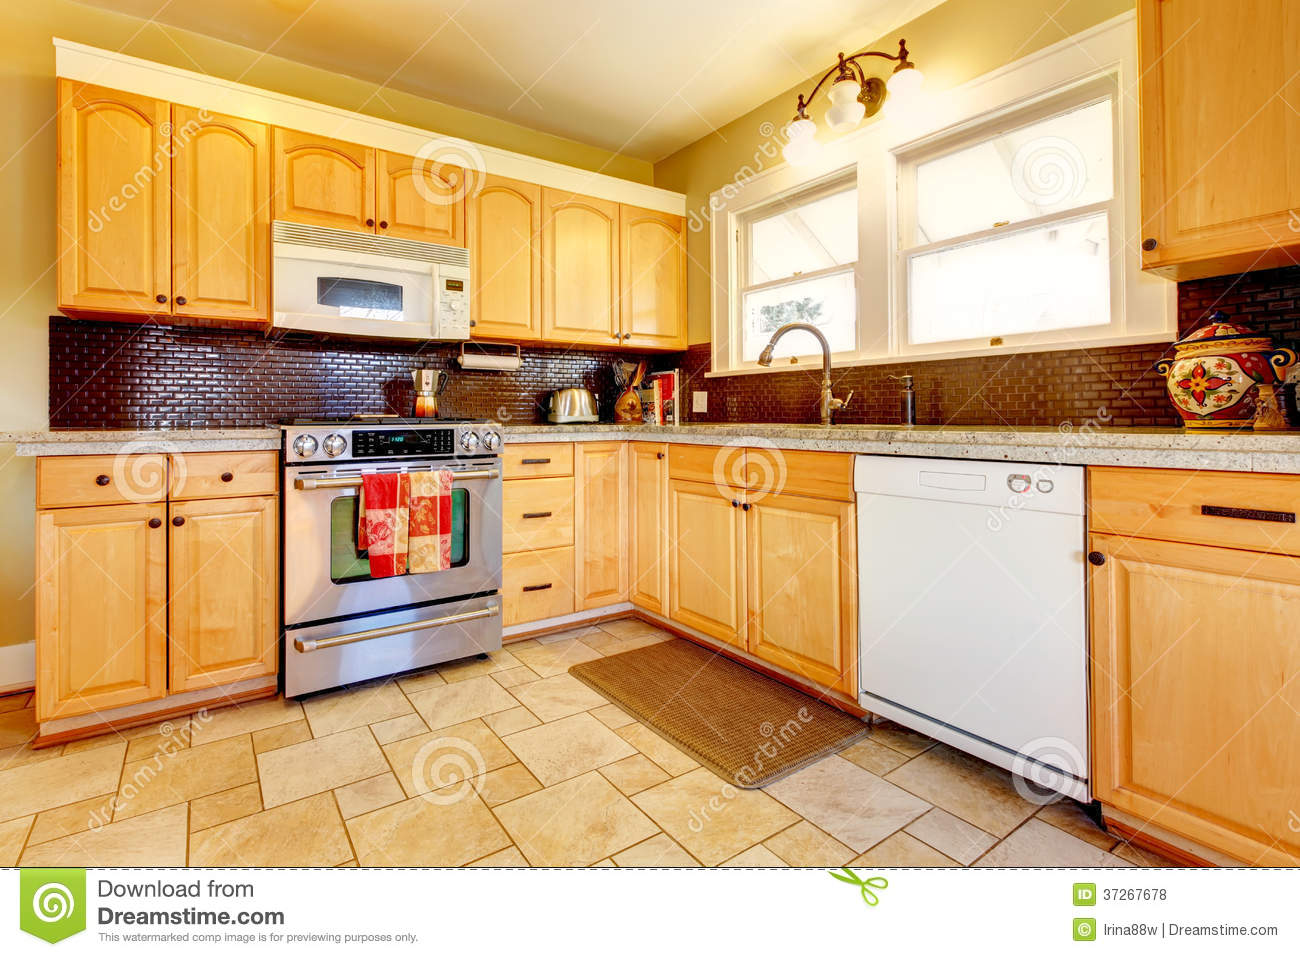 Light Yellow Kitchen Light Tones Wood Kitchen With Brick Backsplash Design Royalty Free